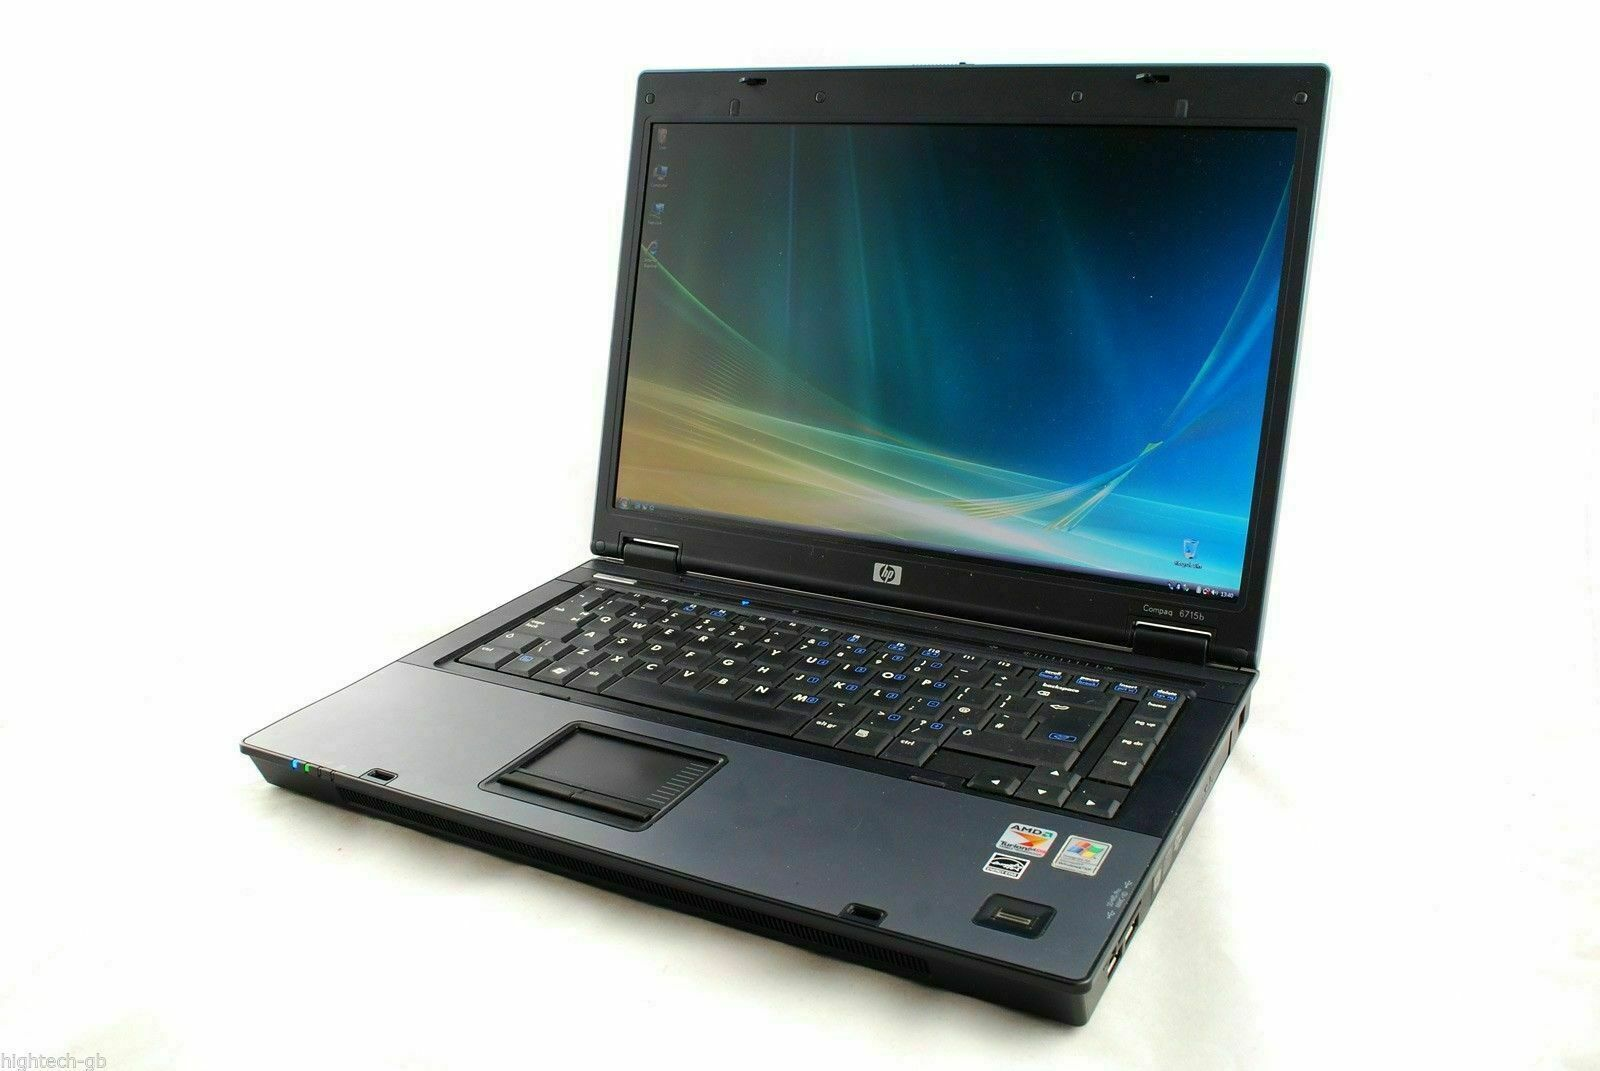 ???? ????pc ordinateur portable hp compaq 6716b ecran 15'4 320go ram 3go config ok